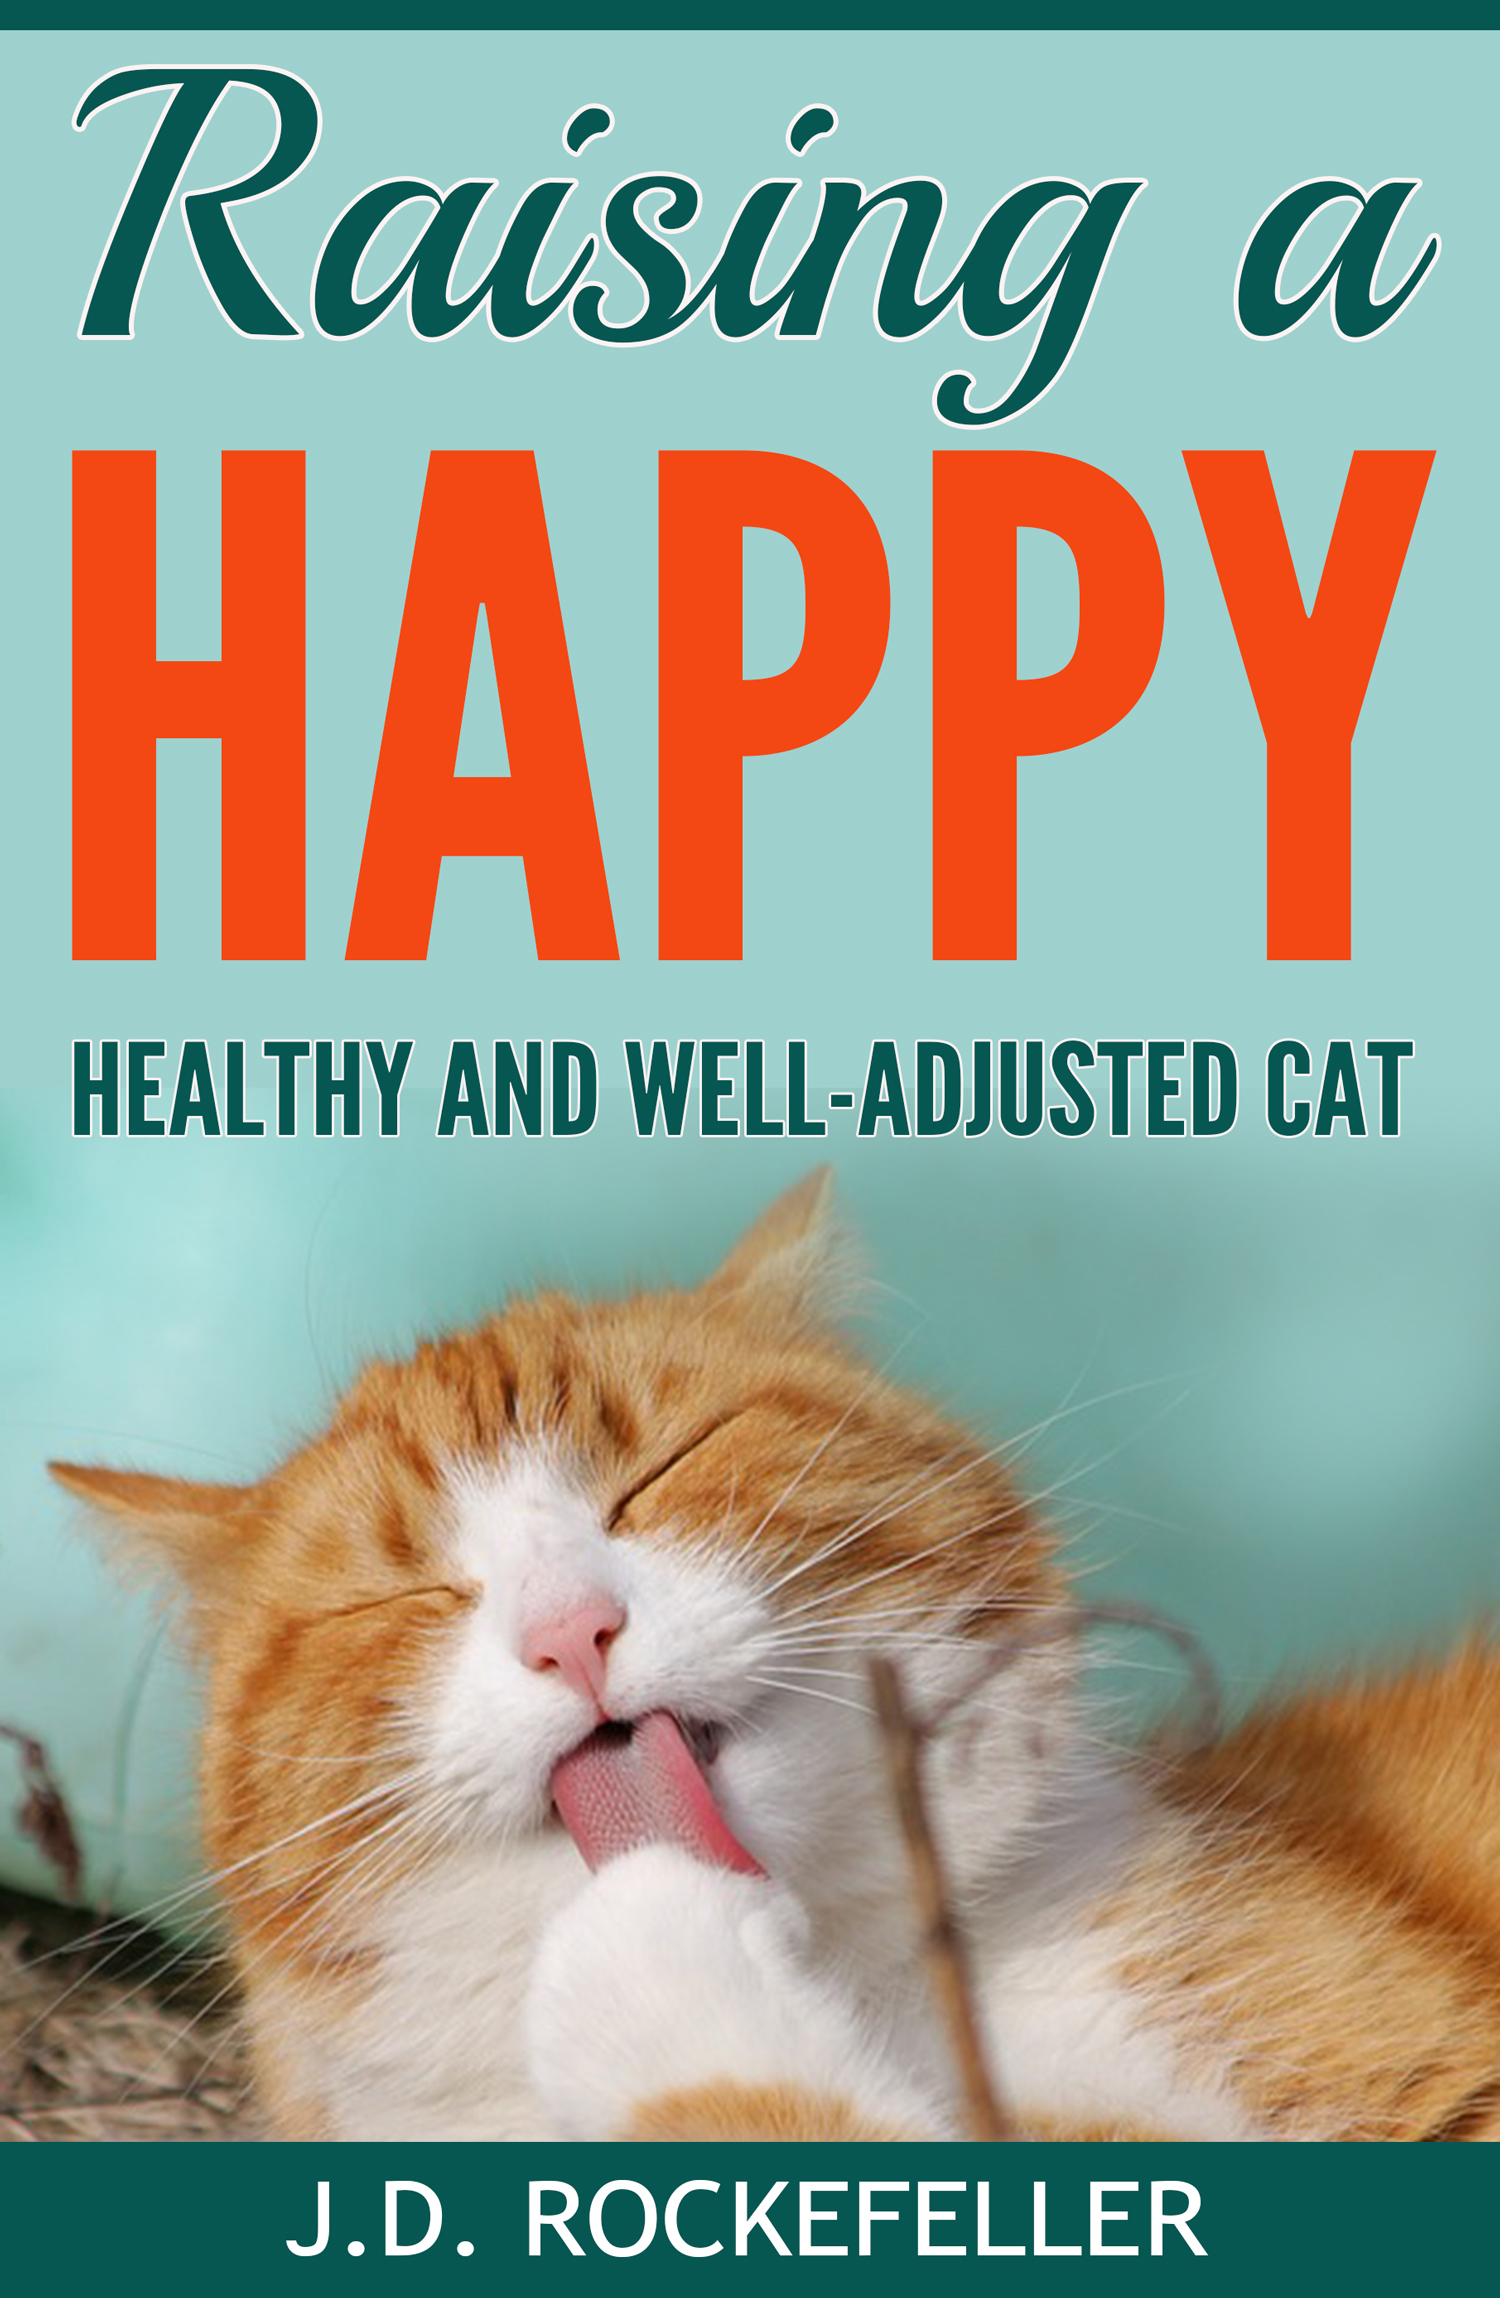 Raising a Happy, Healthy and Well-Adjusted Cat  by  J.D. Rockefeller